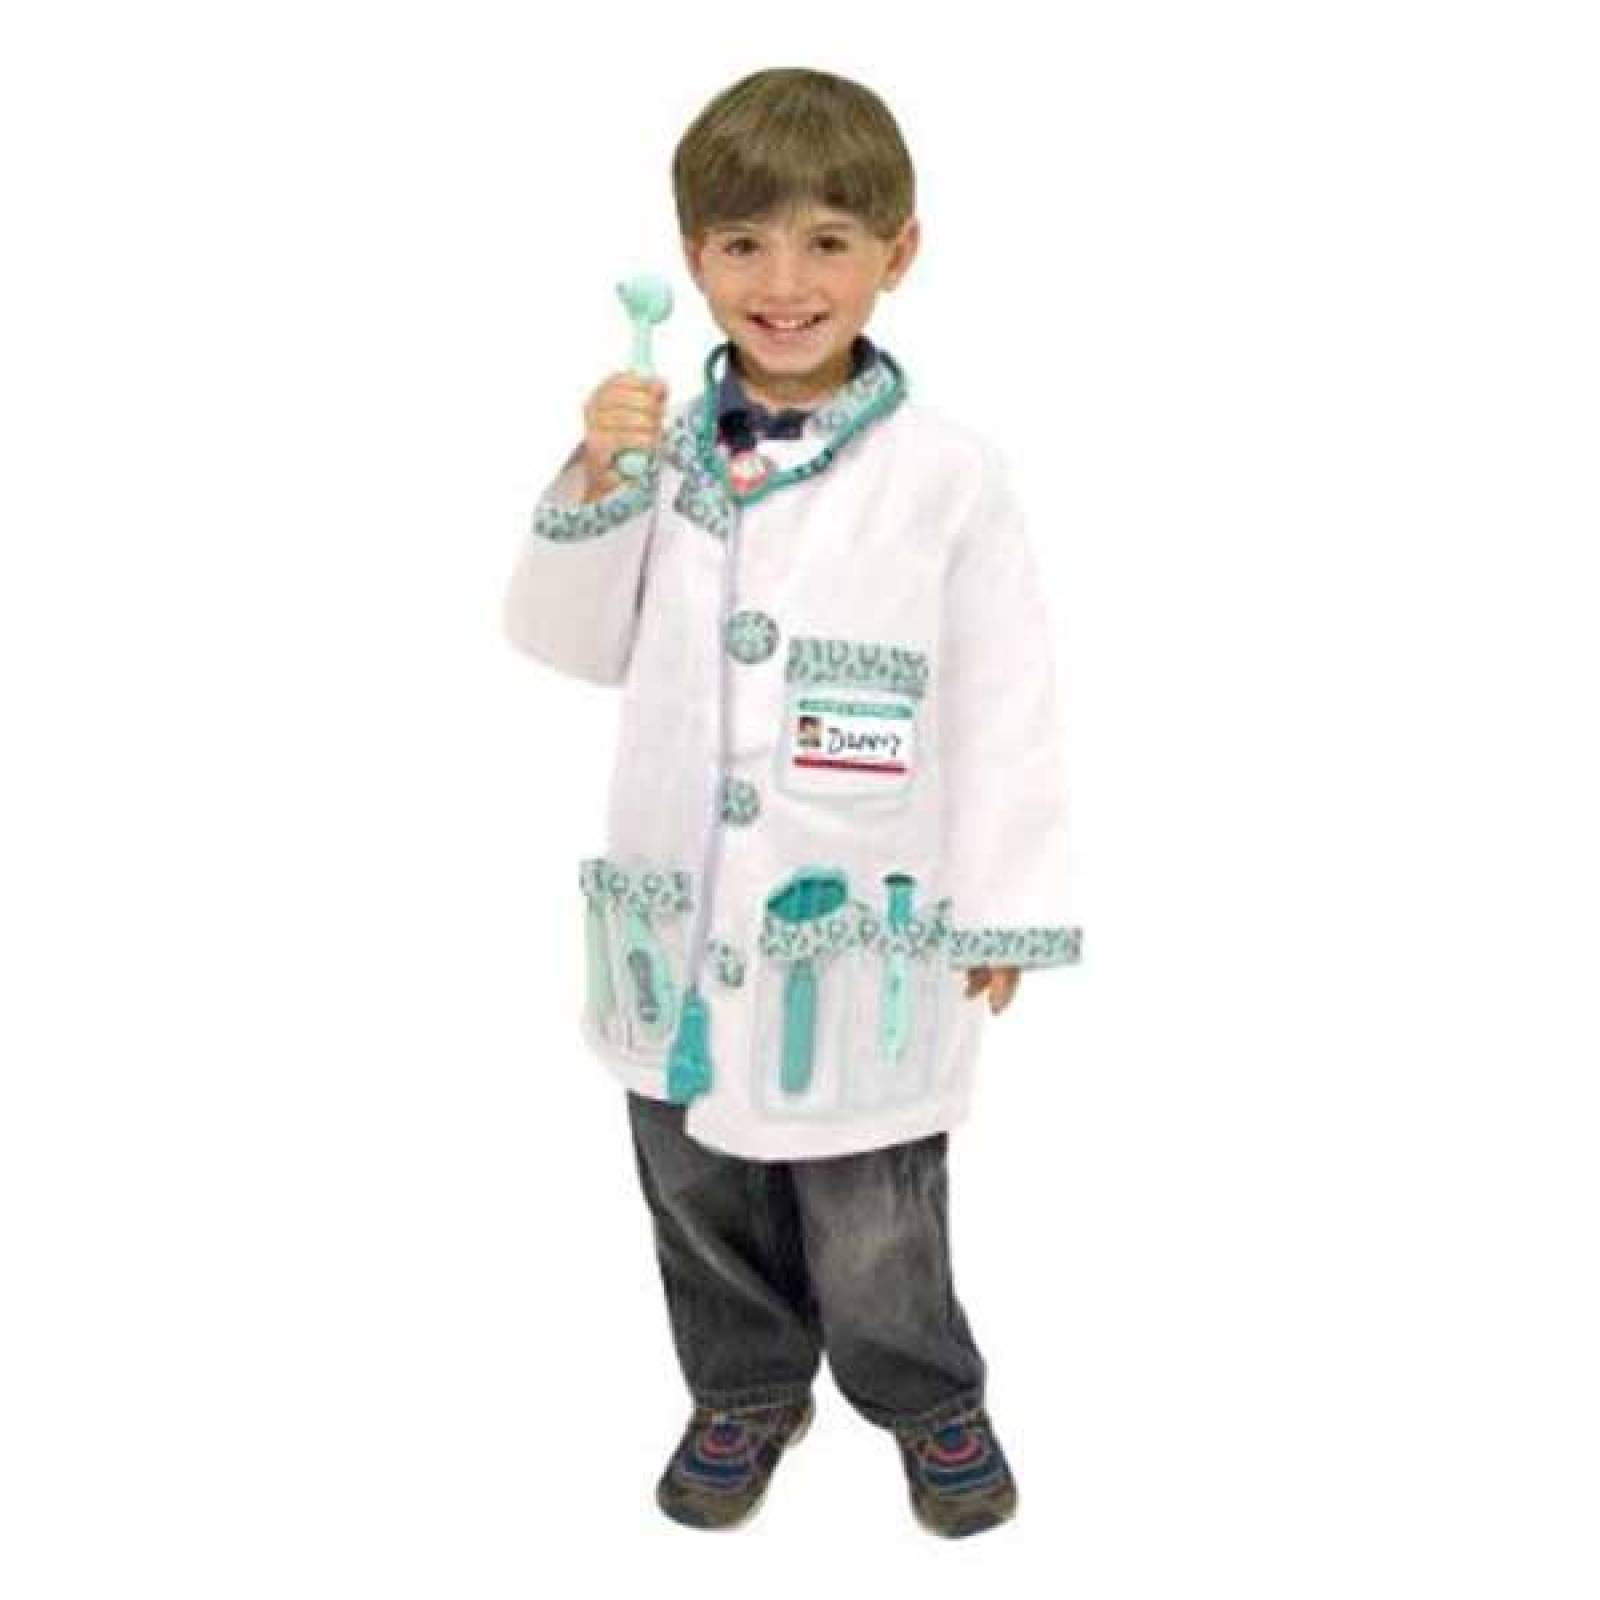 Fancy Dress Role Play Costume Set - Doctor thumbnails